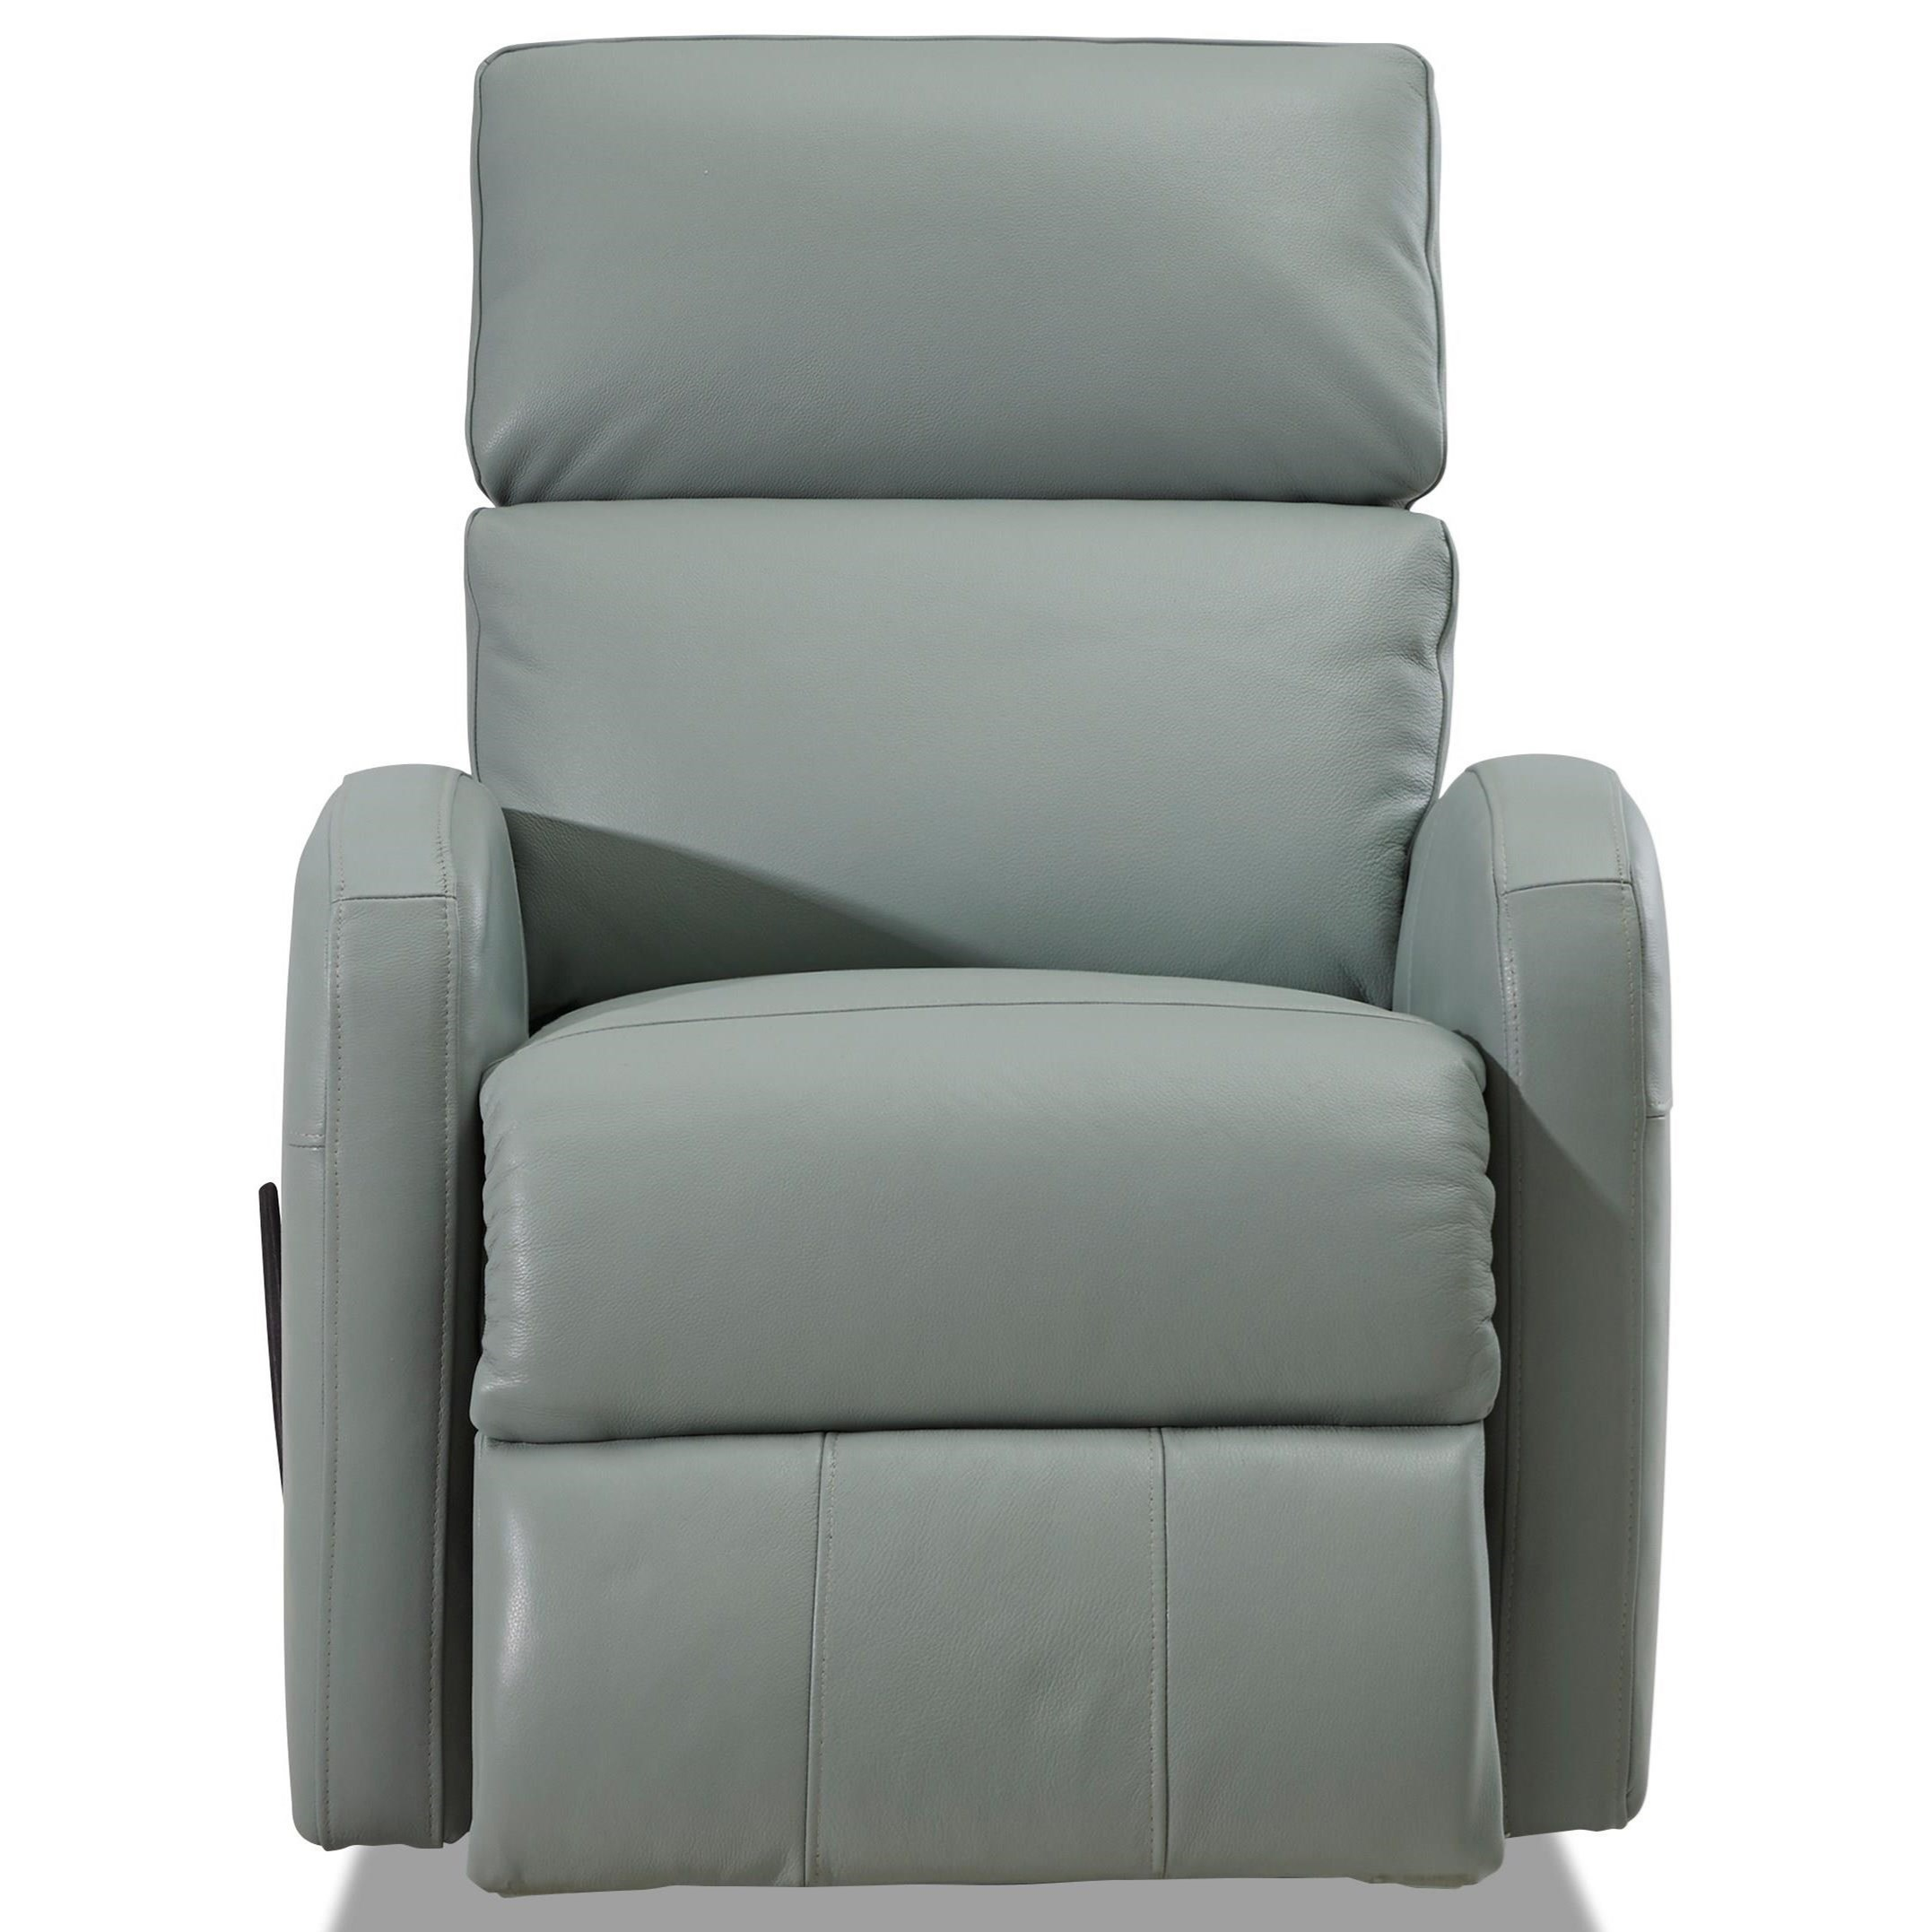 Adios Manual Recliner by Klaussner at Northeast Factory Direct